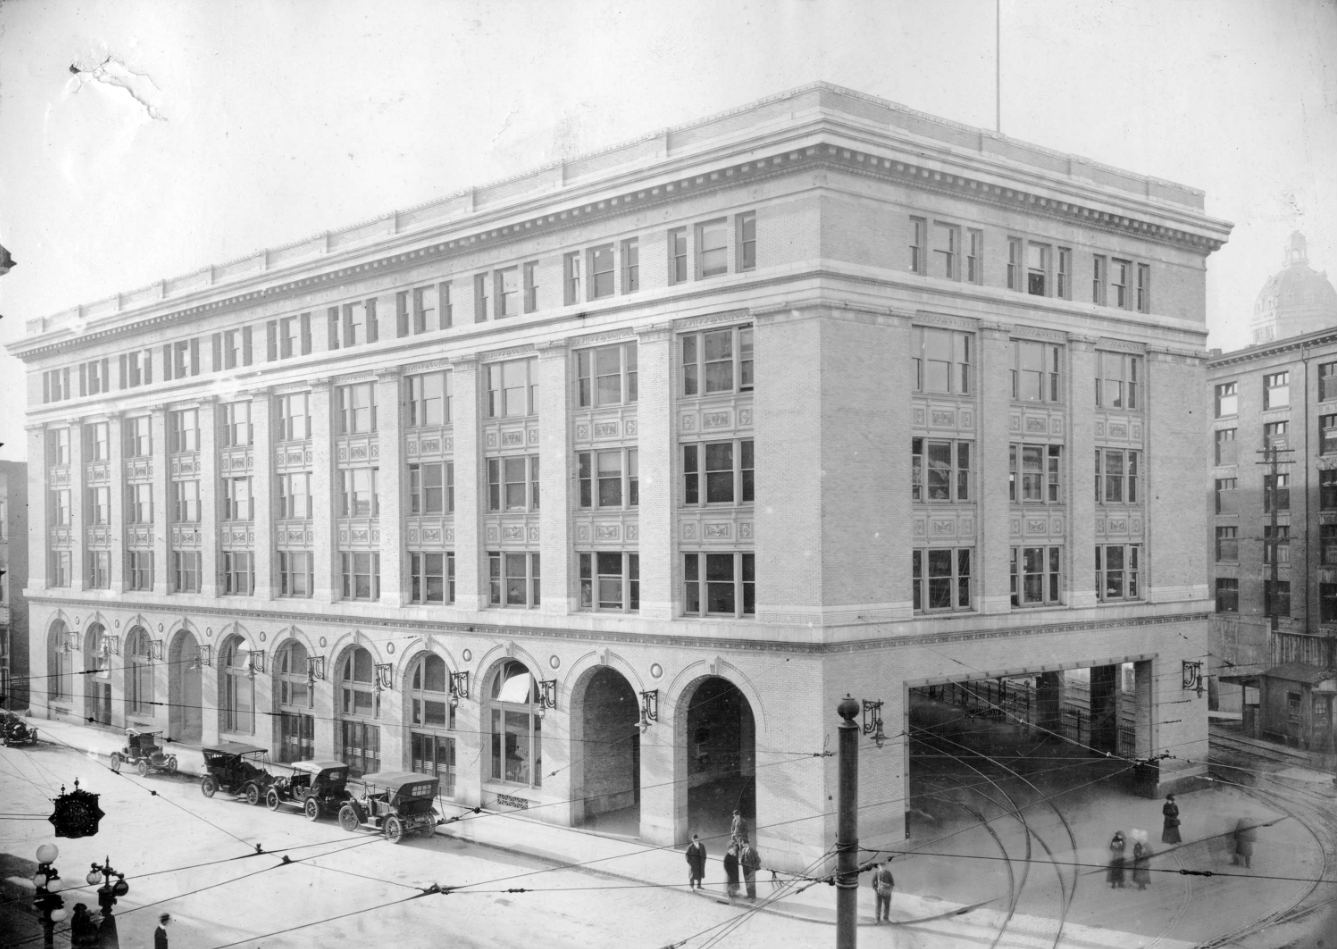 BCER terminal at Hastings and Carrall in 1912. CVA M-14-71